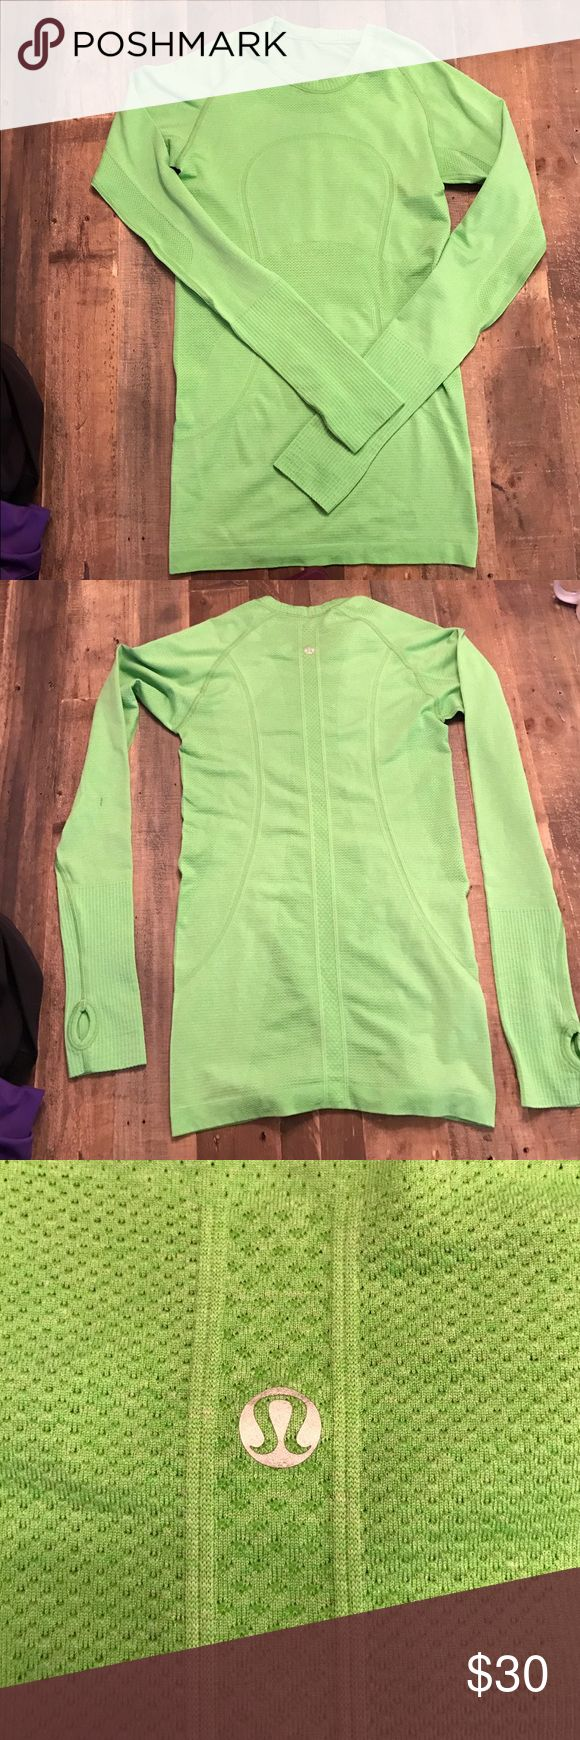 Lululemon Neon green long sleeve top. Worn twice, great condition, no pilling. lululemon athletica Tops